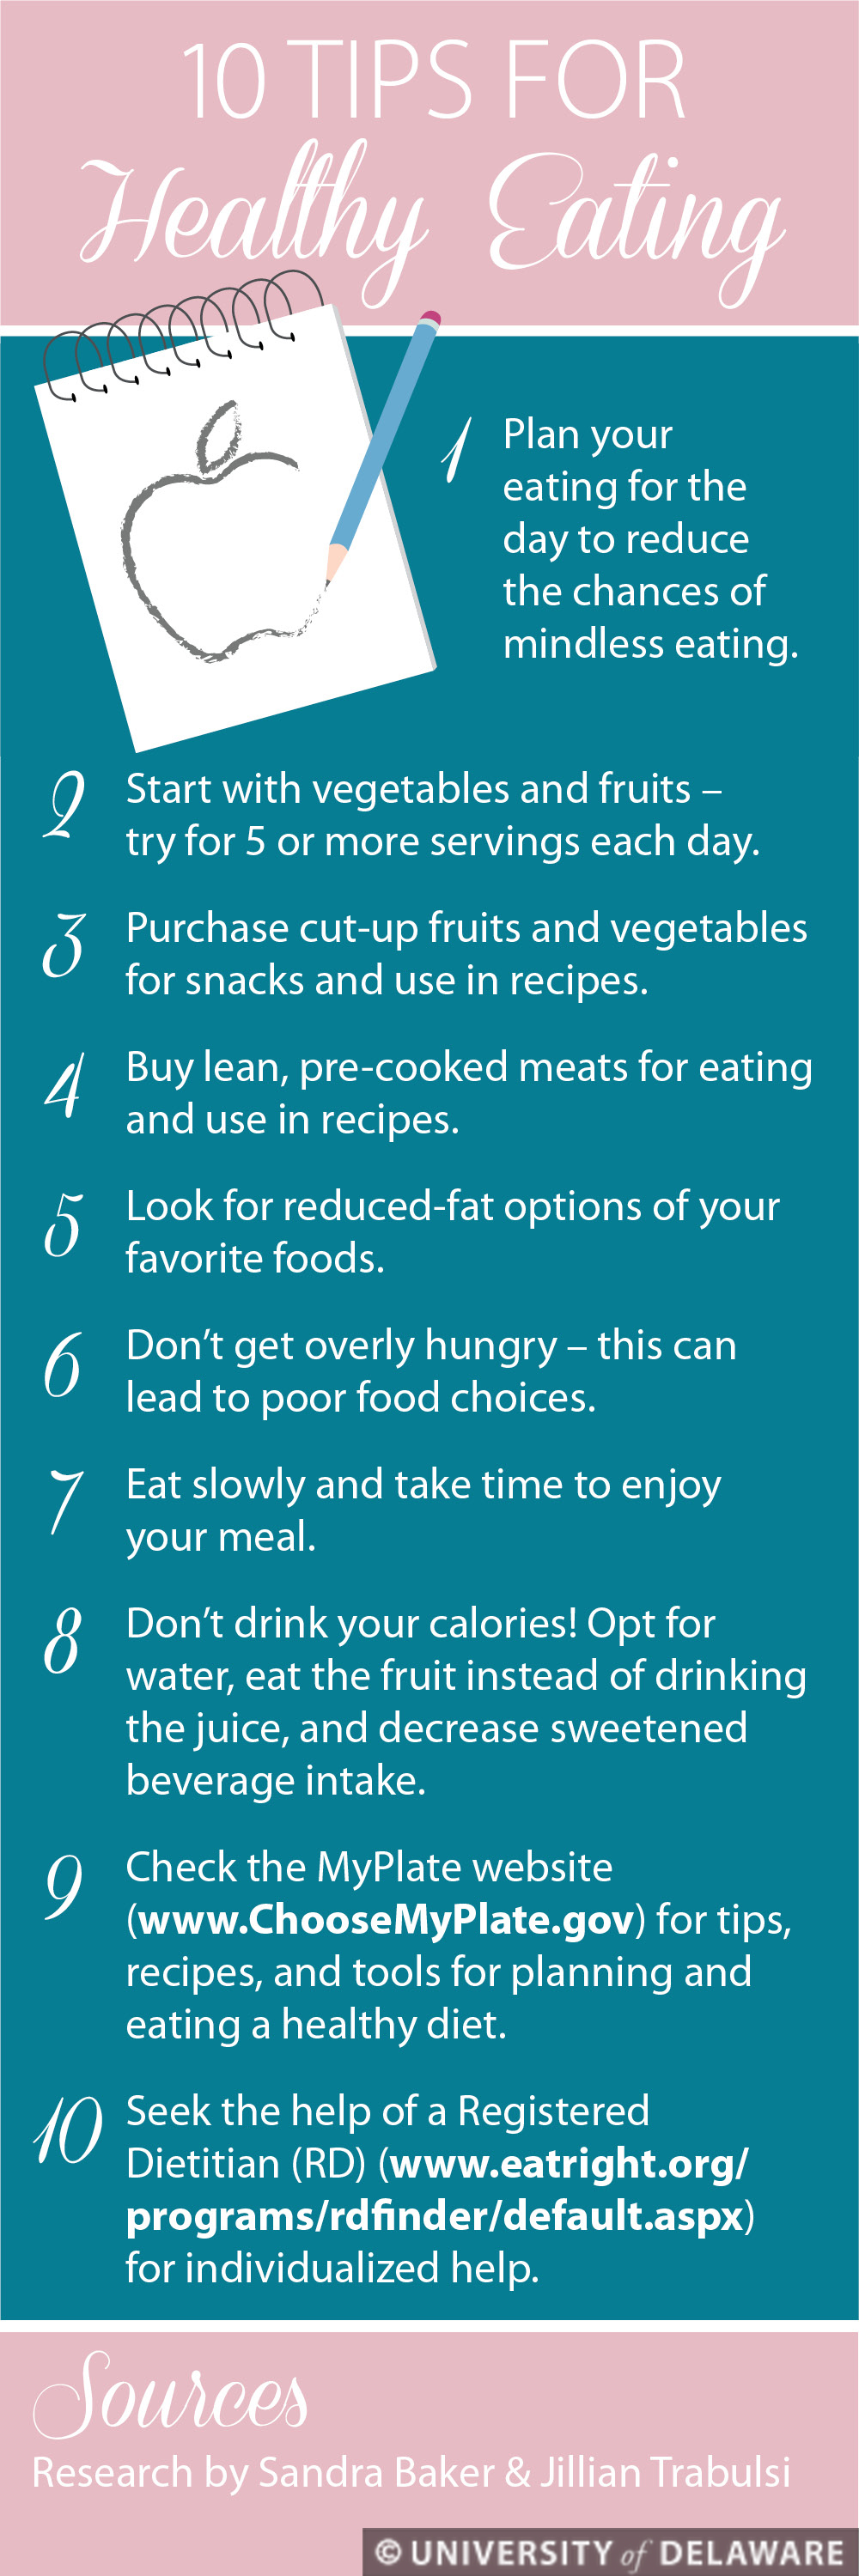 10 Tips for Healthy Eating - research provided by UD professors in Behavioral Health & Nutrition